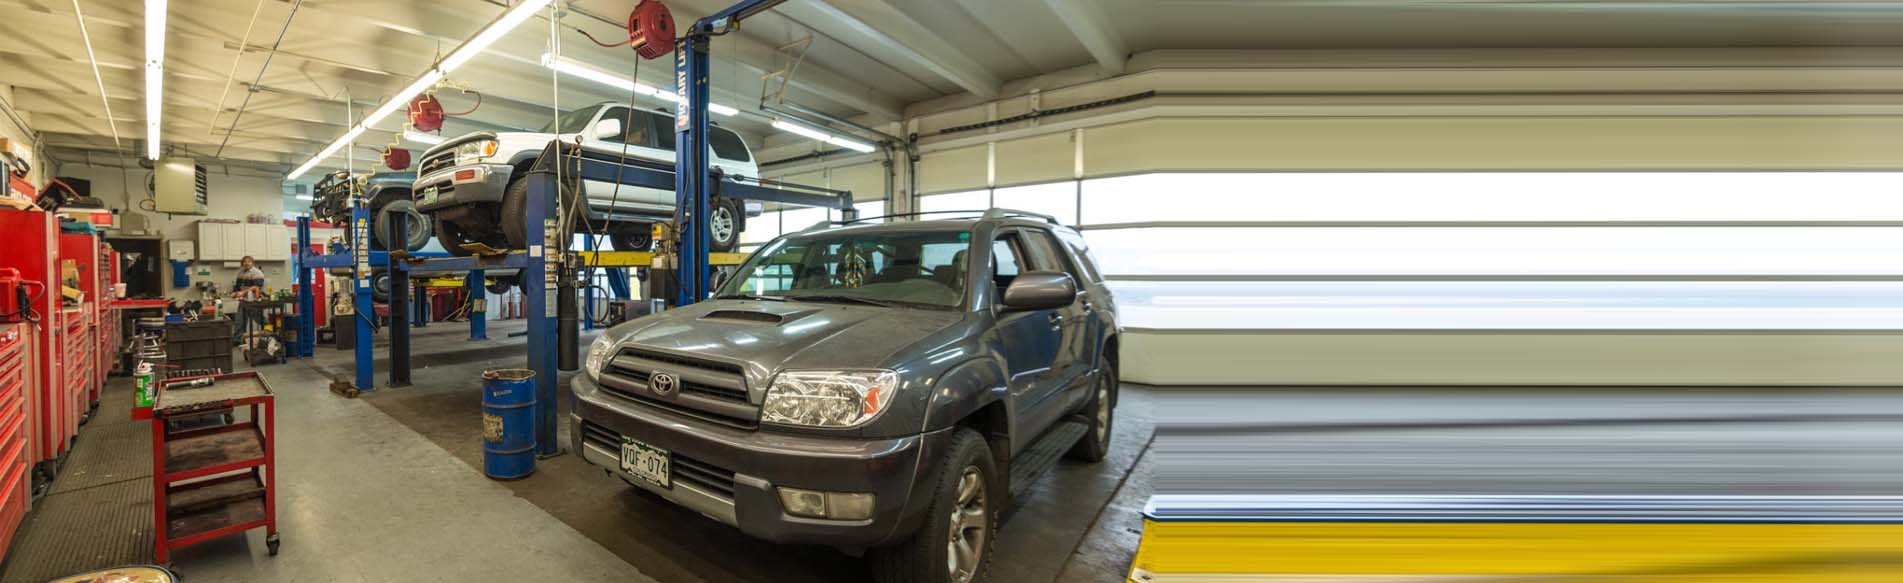 We Offer Performance Exhaust and Auto Repair in the Denver 80222 Area